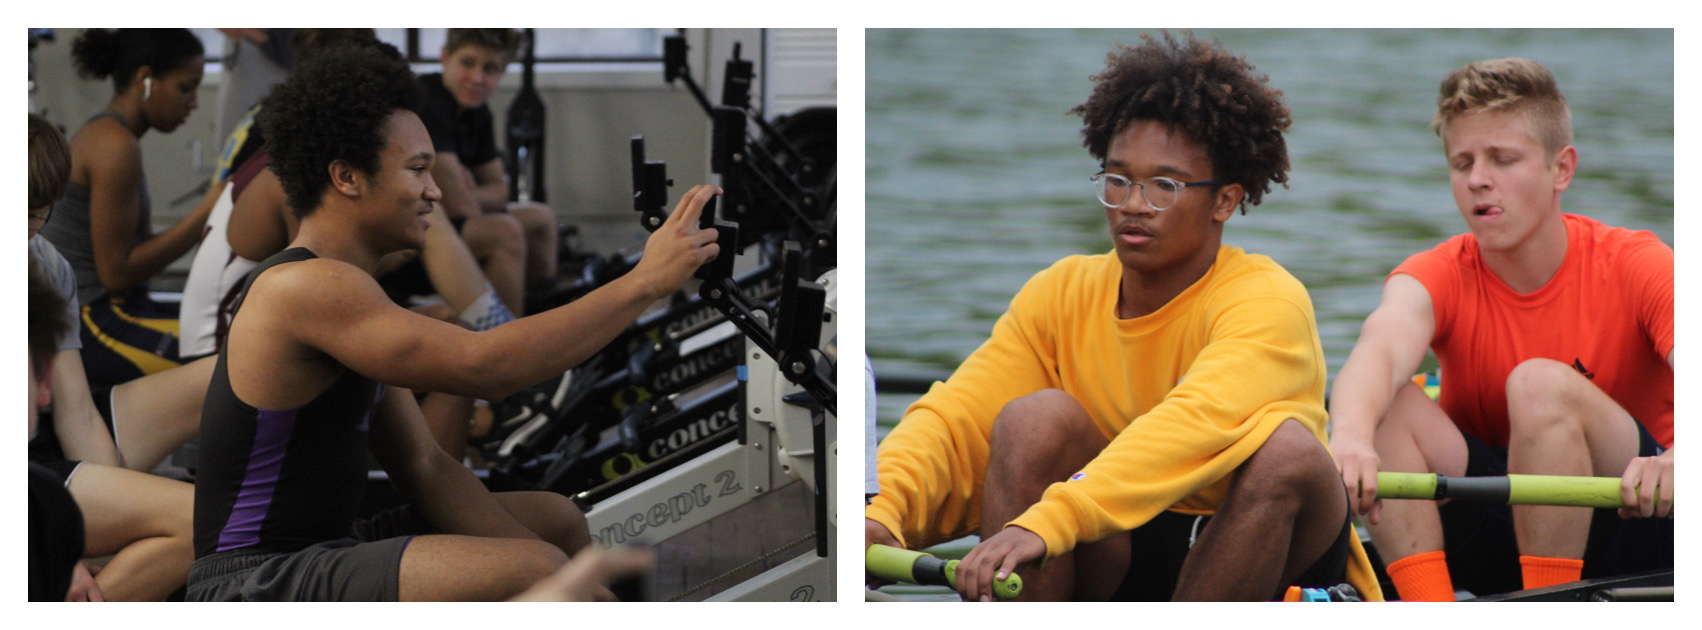 Seth Lopez Rowing and Erging